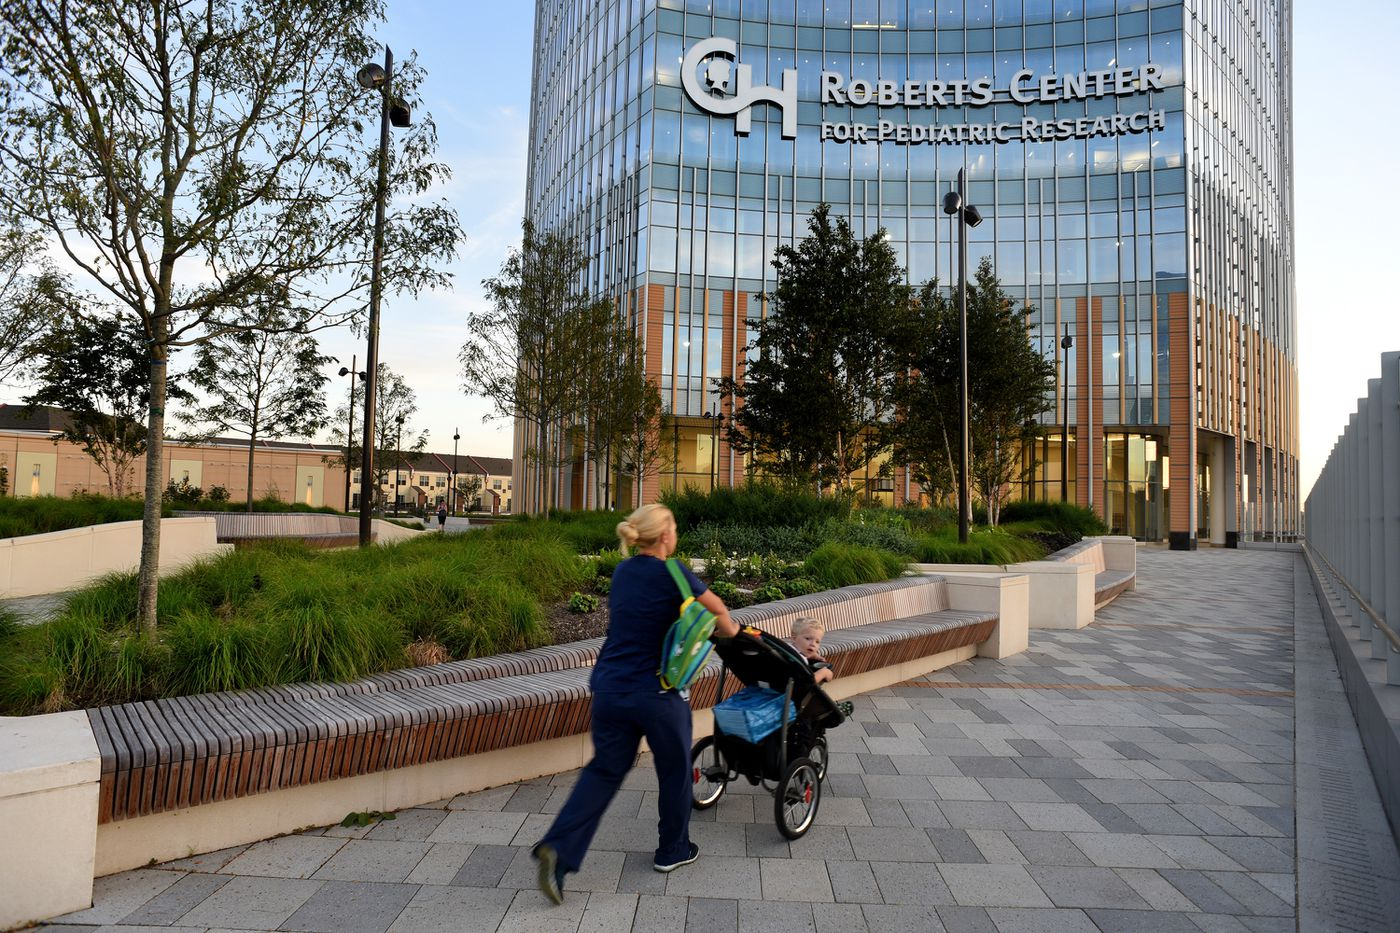 New Children's Hospital campus yearns for the big city, but